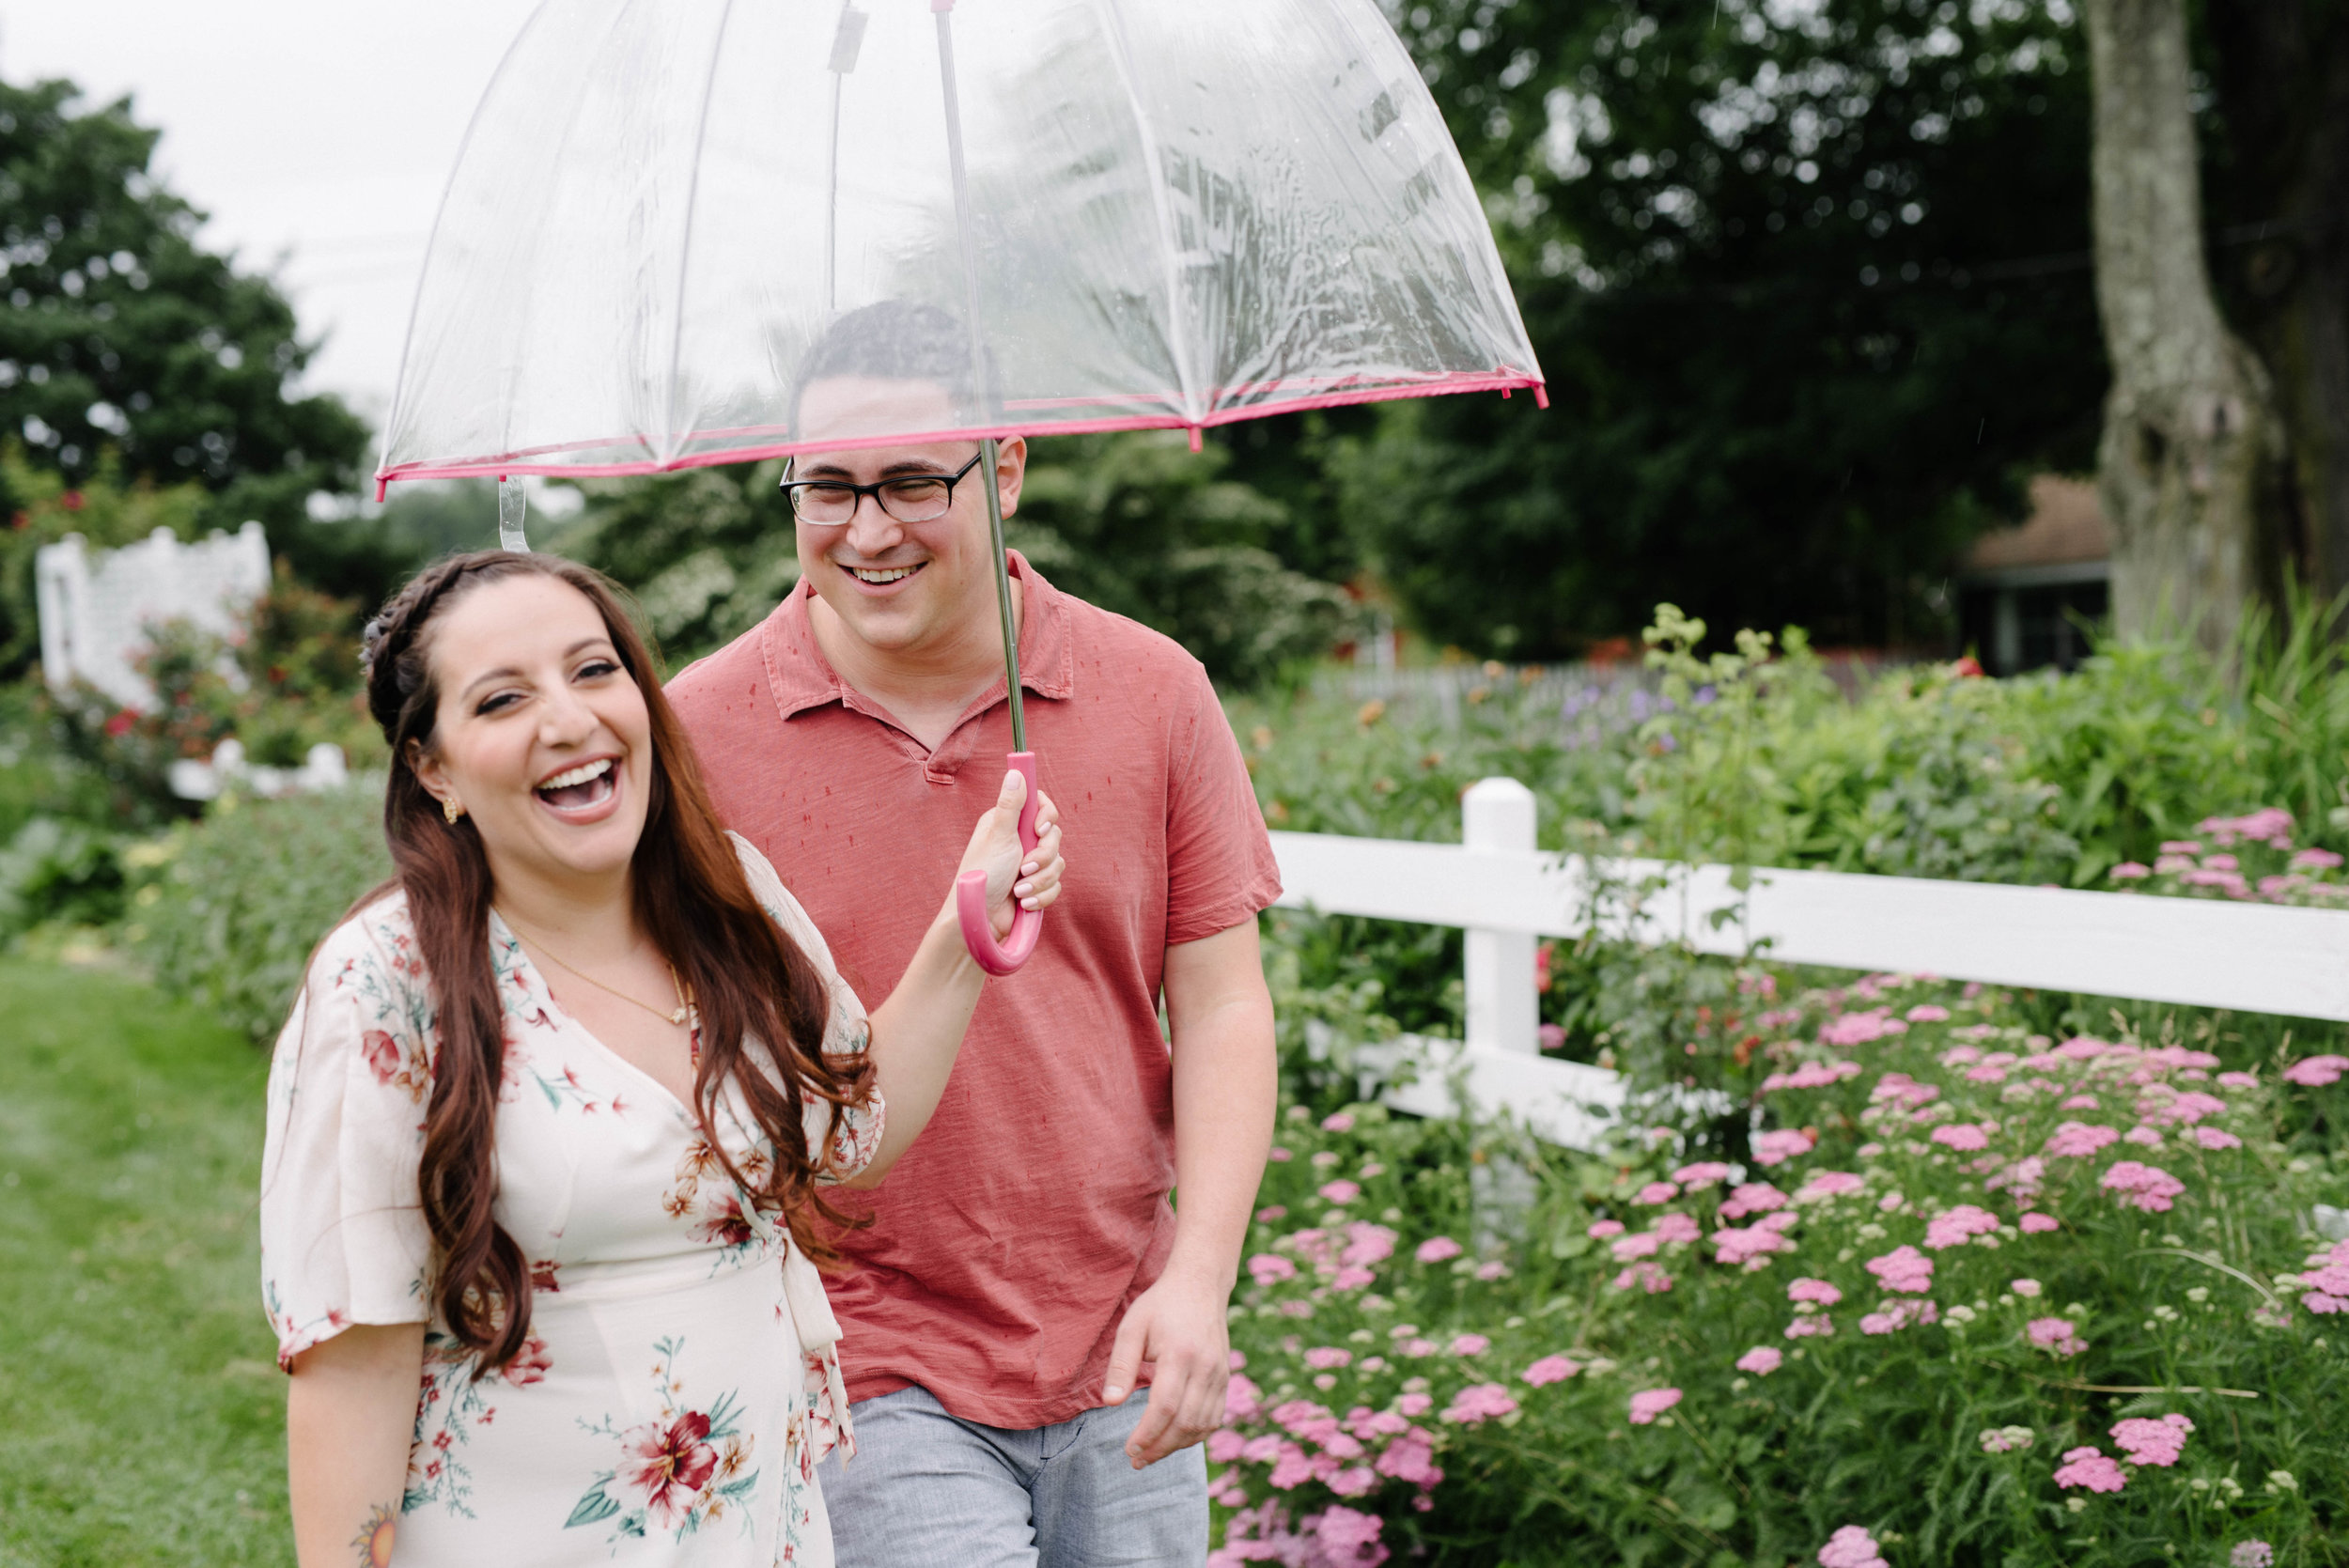 Lauren+Matt- Princeton Engagement Session- Terhune Orchards- New Jersey- Olivia Christina Photo-16.jpg